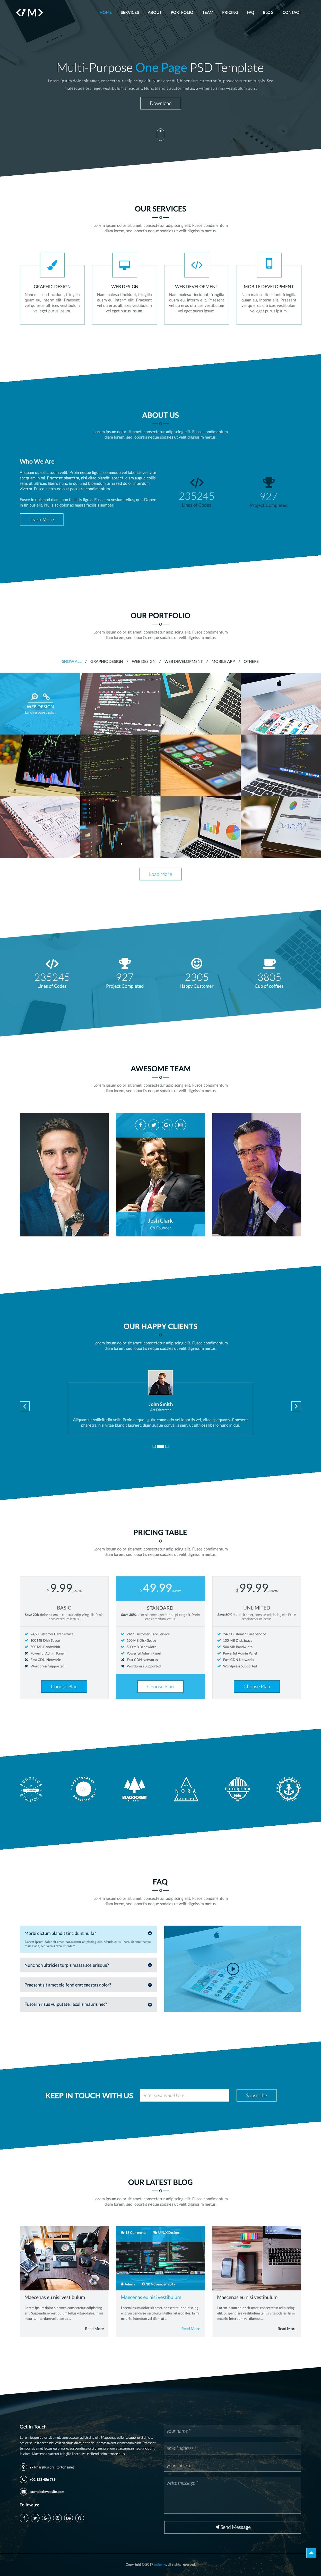 MTheme - Multi-Purpose One Page PSD Template Screenshot 4